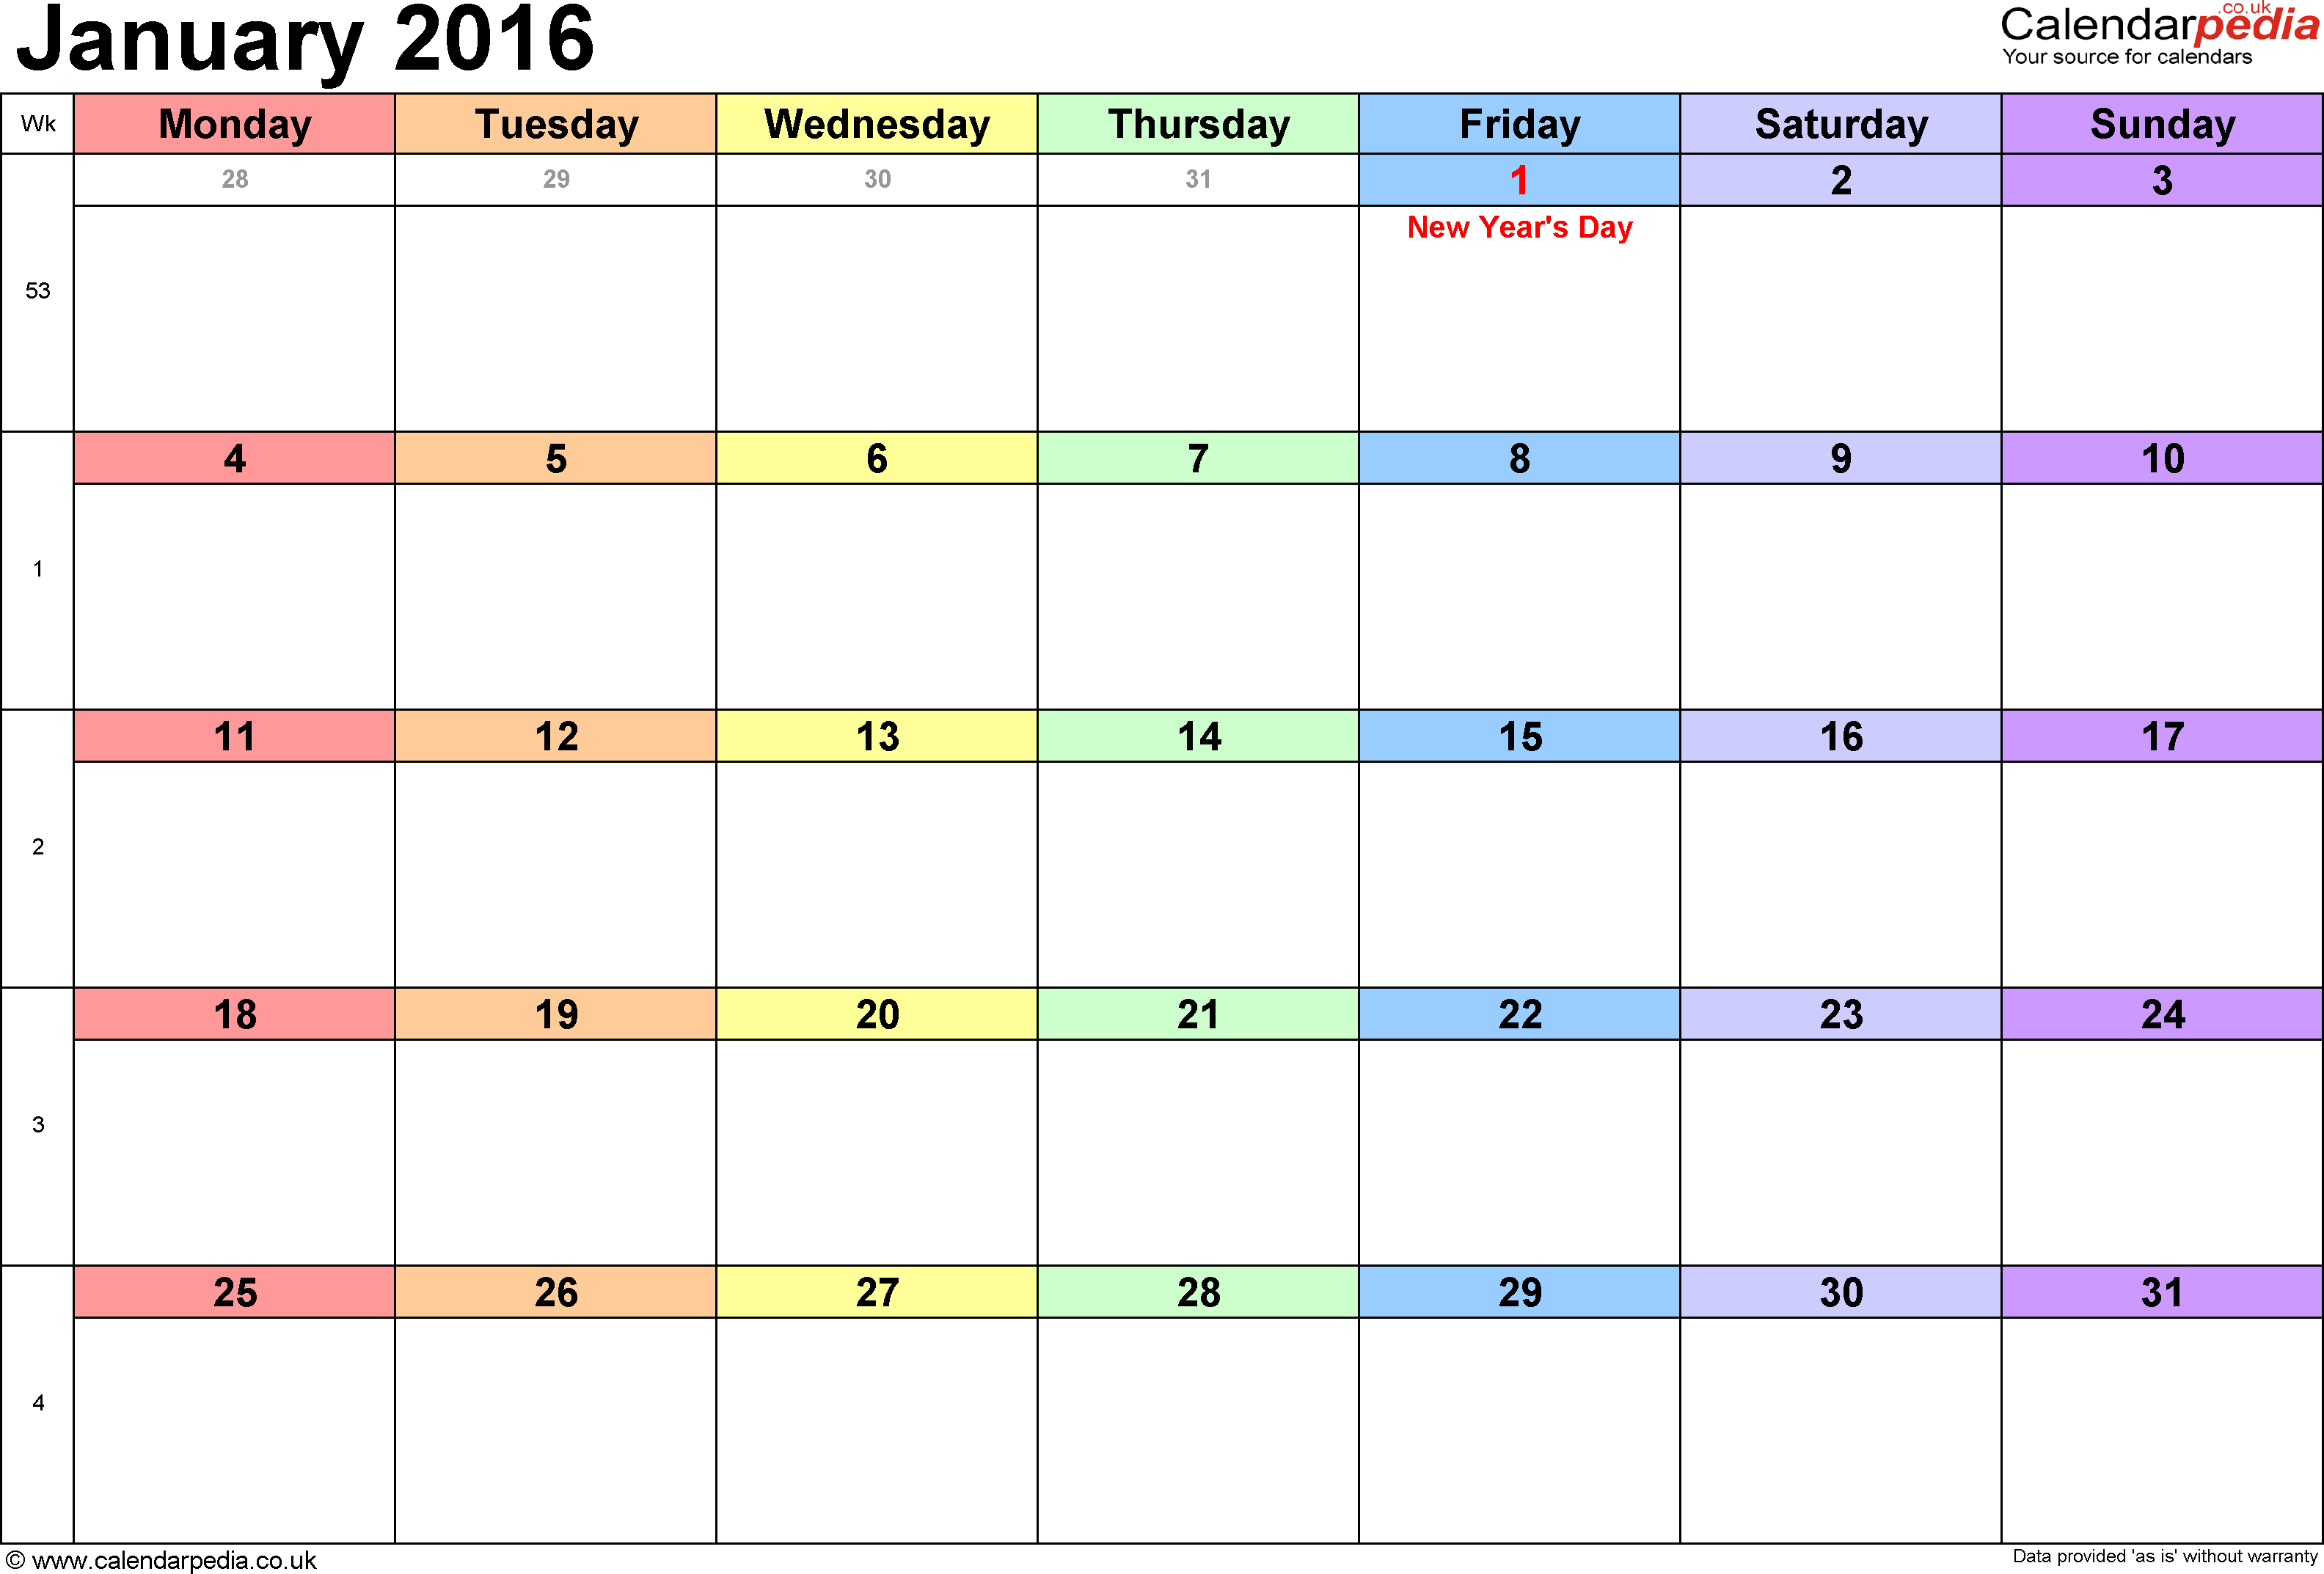 Calendar January 2016, landscape orientation, 1 page, with UK bank holidays and week numbers